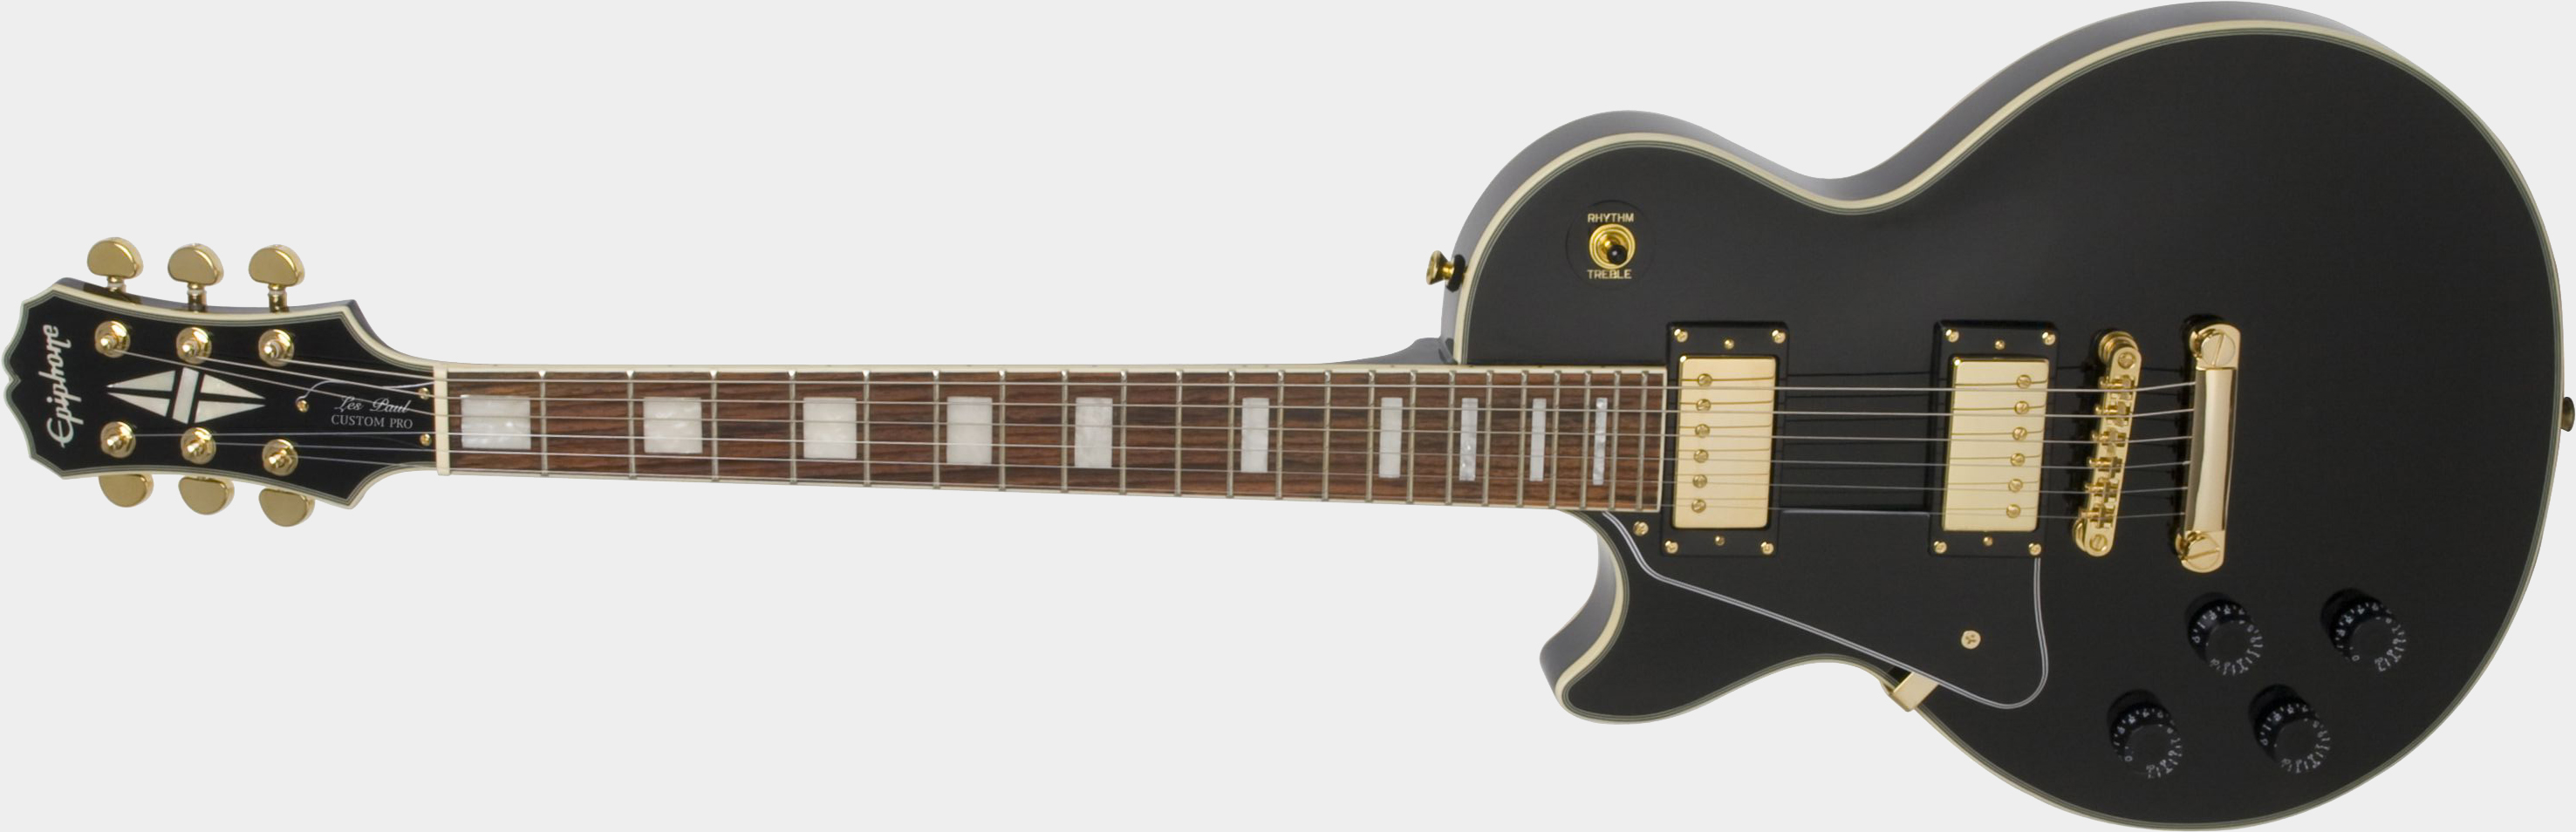 EPIPHONE Les Paul Custom PRO Ebony Lefthand